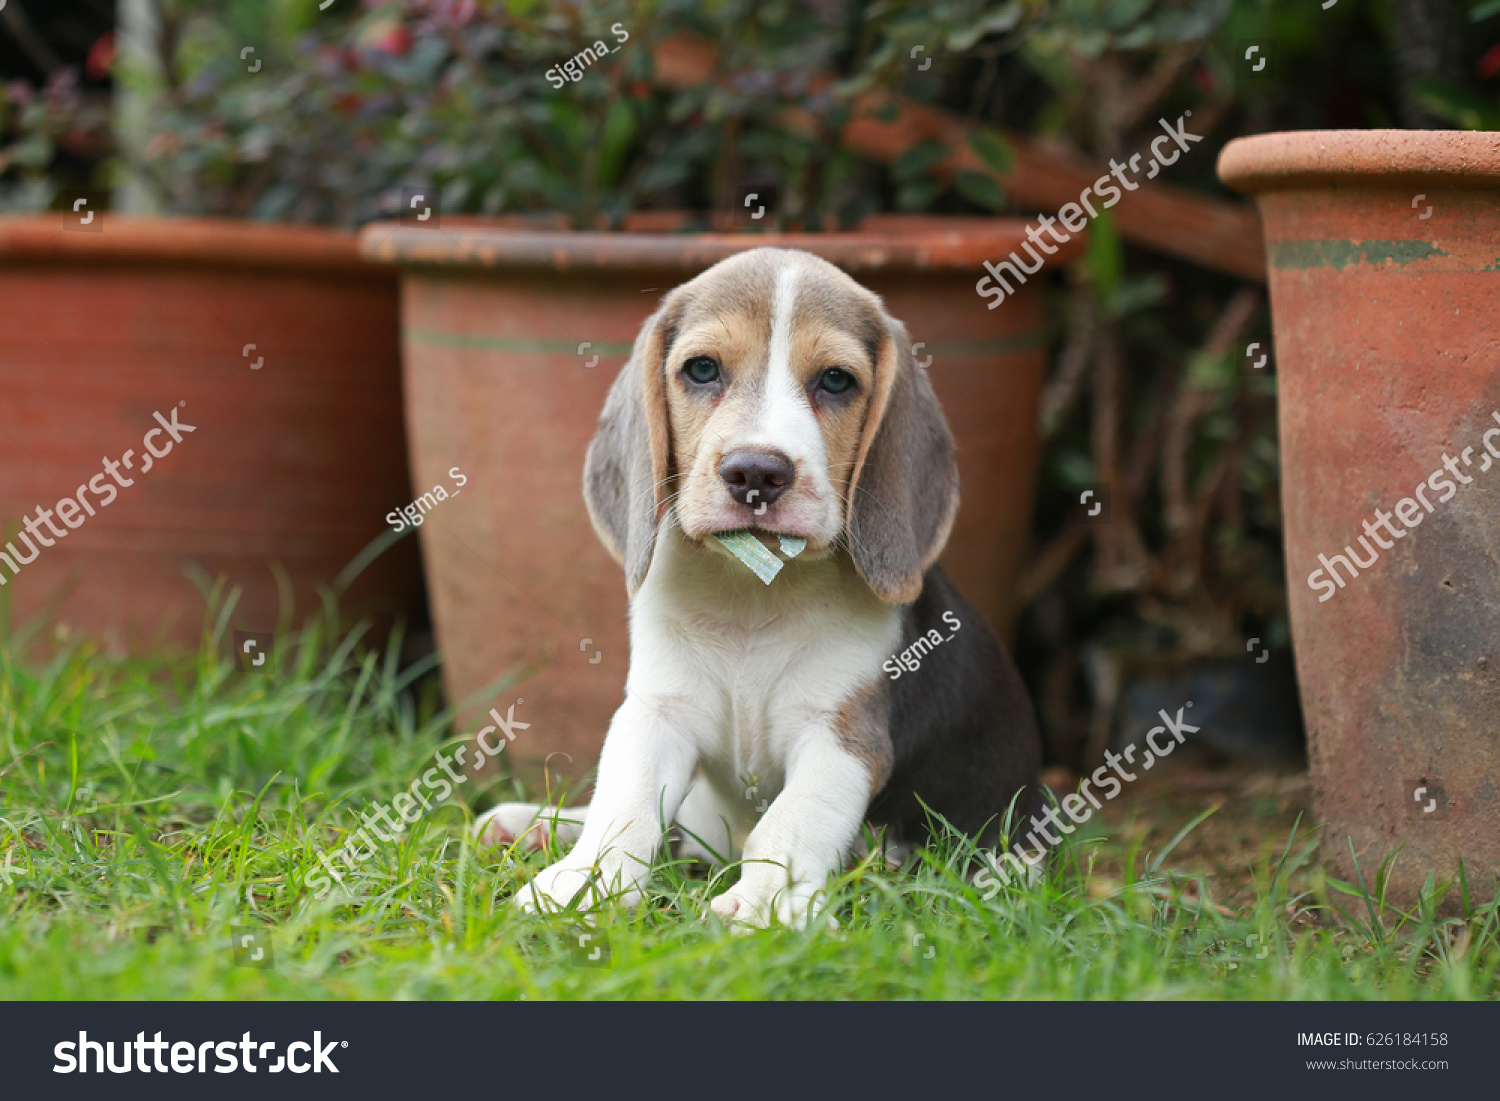 Strong Purebred Silver Tri Color Beagle Stock Photo Edit Now 626184158